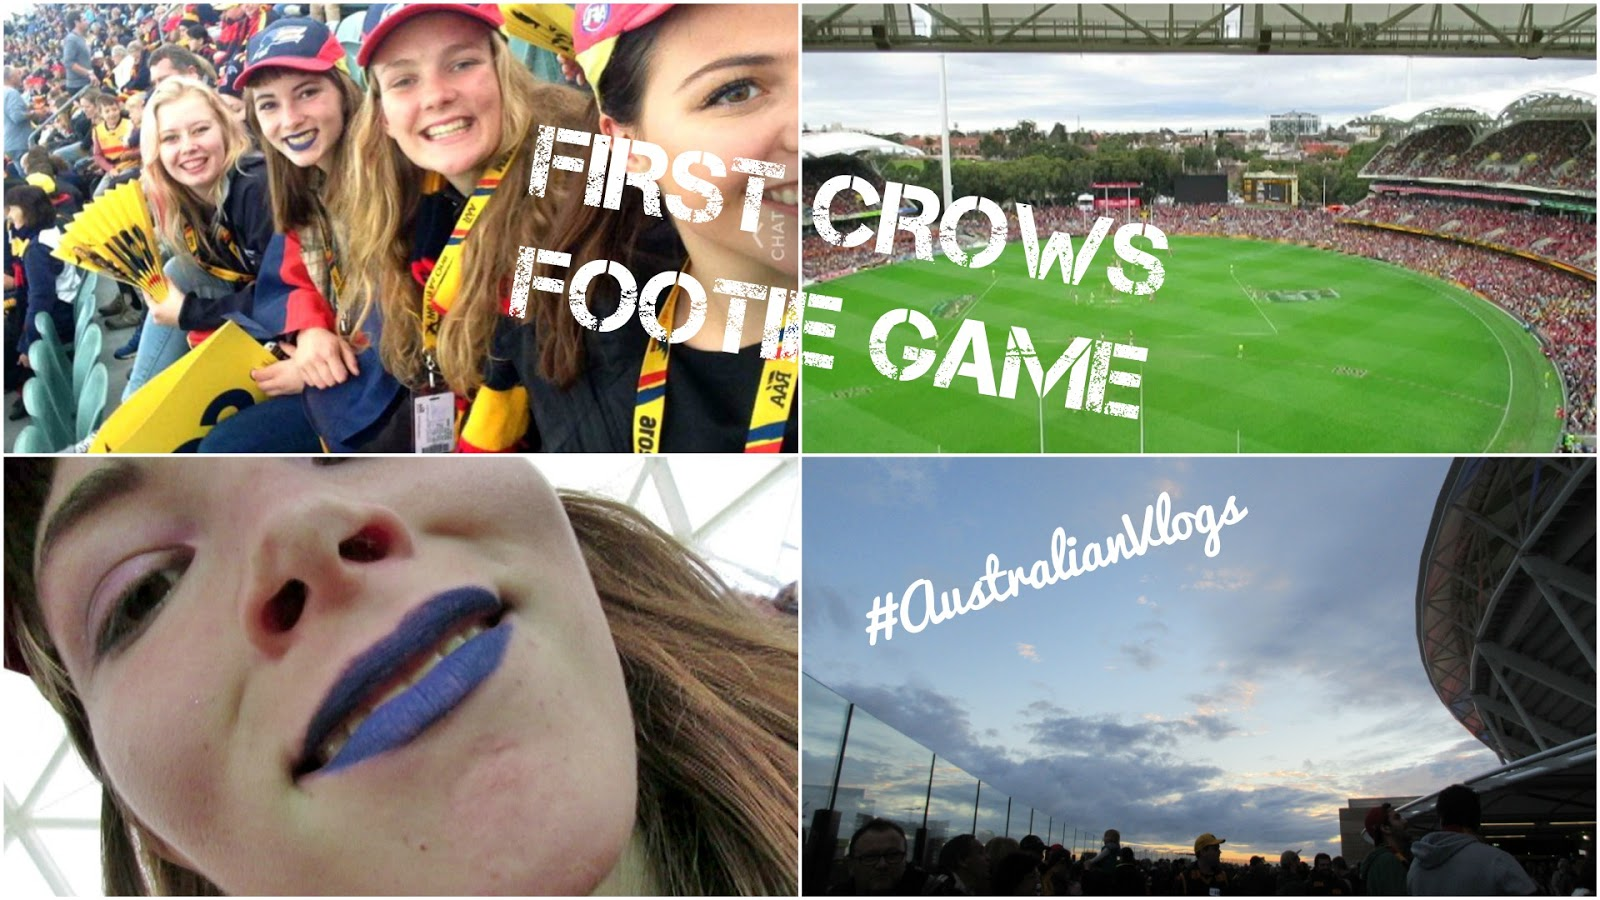 Crows Footie Game